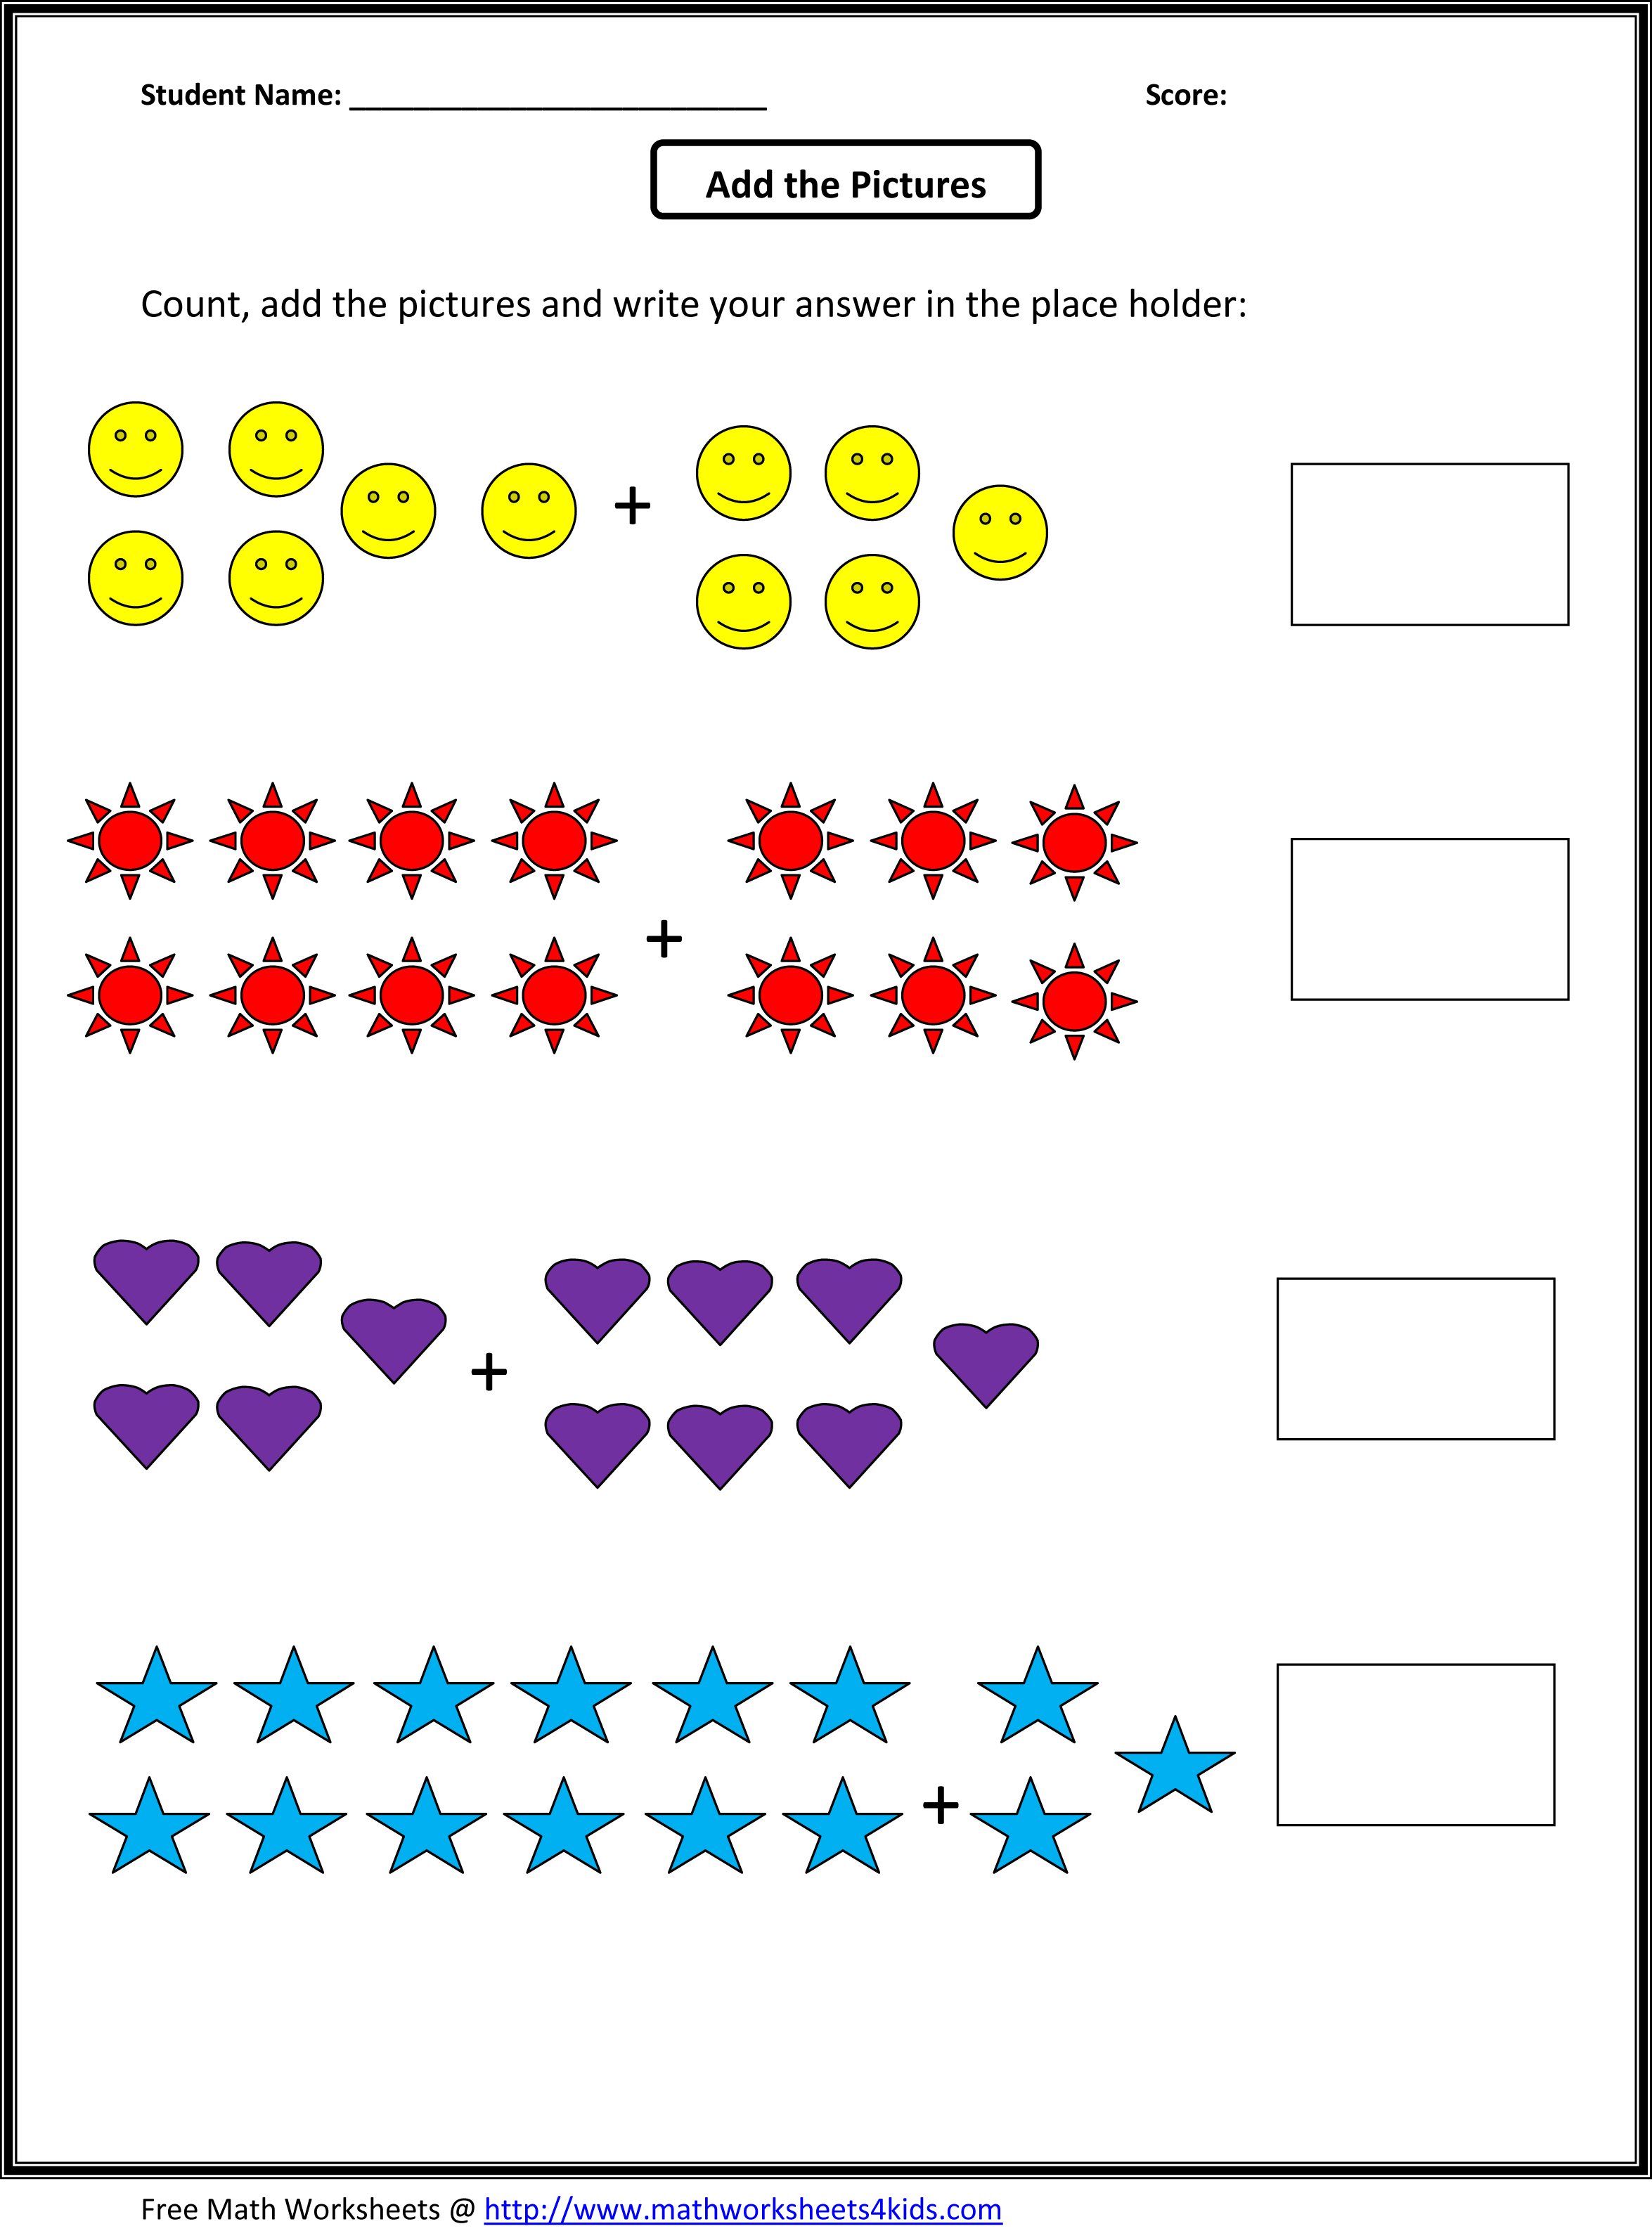 Aldiablosus  Splendid Grade  Maths Worksheet  Reocurent With Outstanding Math Worksheets For St Grade Free  Reocurent With Breathtaking Join The Dots Worksheets For Preschool Also Grade  Worksheet In Addition Chemical Formula Writing Worksheet Two Answers And Three Circle Venn Diagram Worksheet As Well As Skeletal System Printable Worksheets Additionally Personification Worksheet Th Grade From Reocurentcom With Aldiablosus  Outstanding Grade  Maths Worksheet  Reocurent With Breathtaking Math Worksheets For St Grade Free  Reocurent And Splendid Join The Dots Worksheets For Preschool Also Grade  Worksheet In Addition Chemical Formula Writing Worksheet Two Answers From Reocurentcom